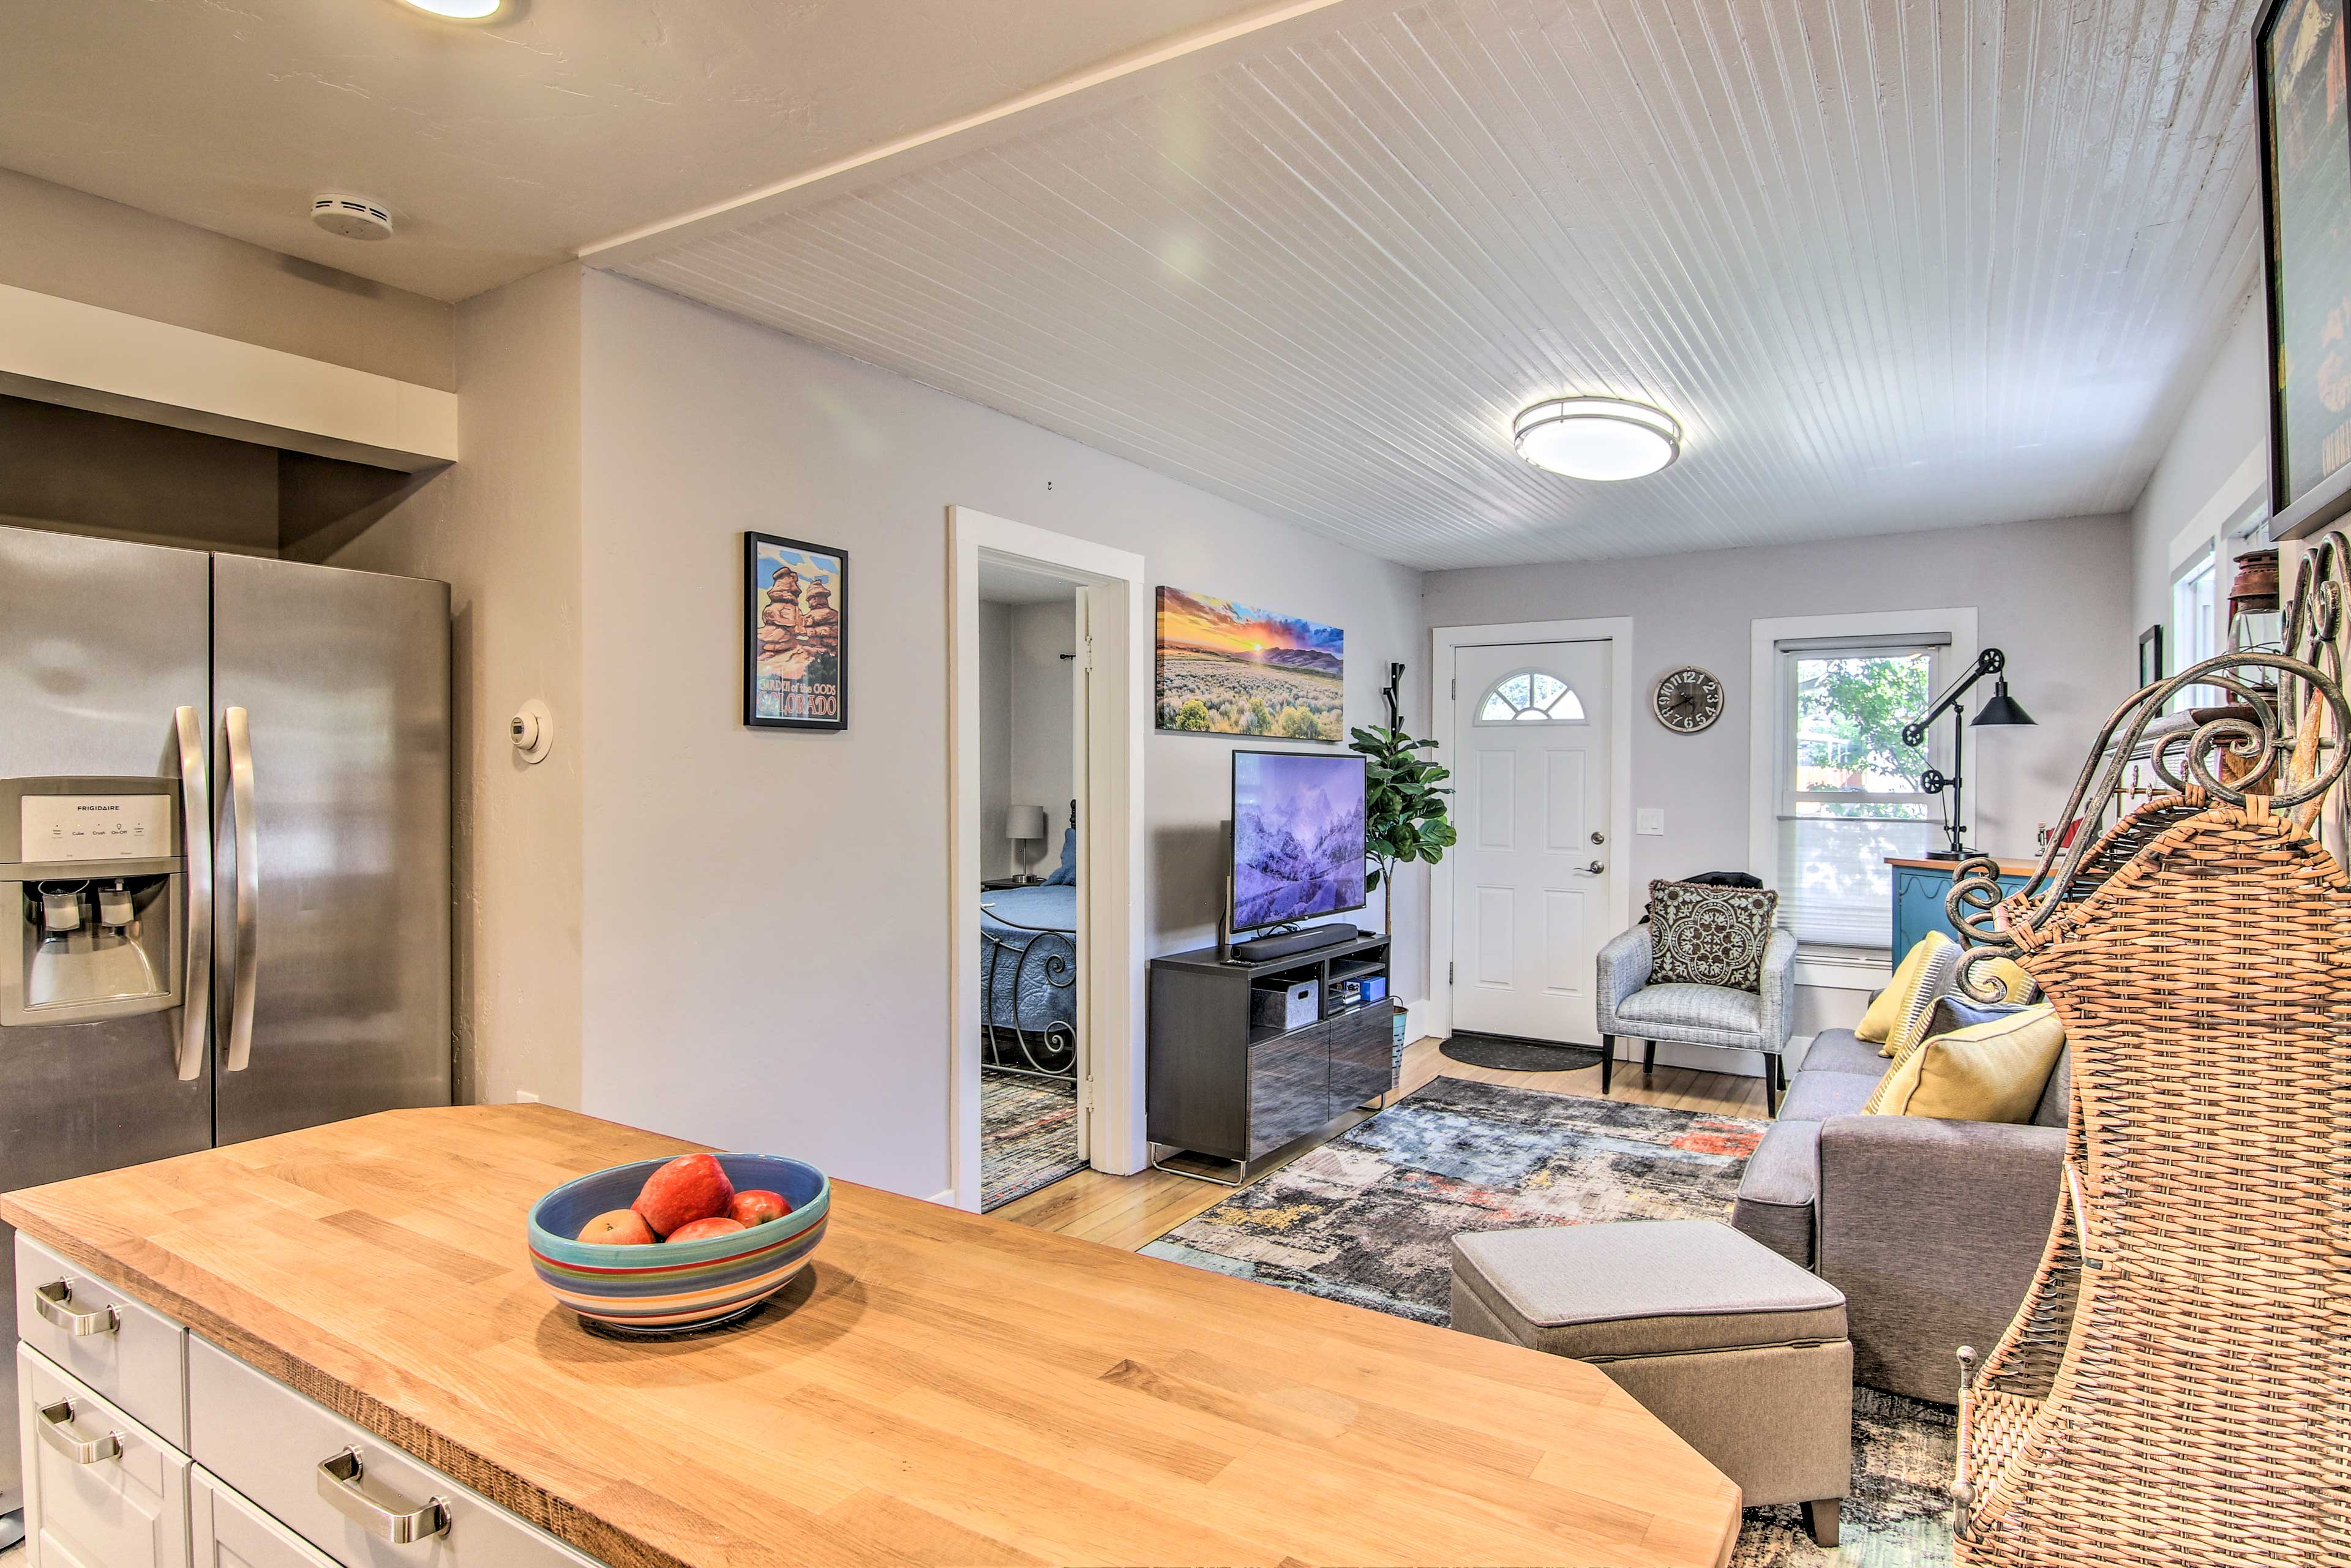 The open floor plan allows the home to feel open and inviting.